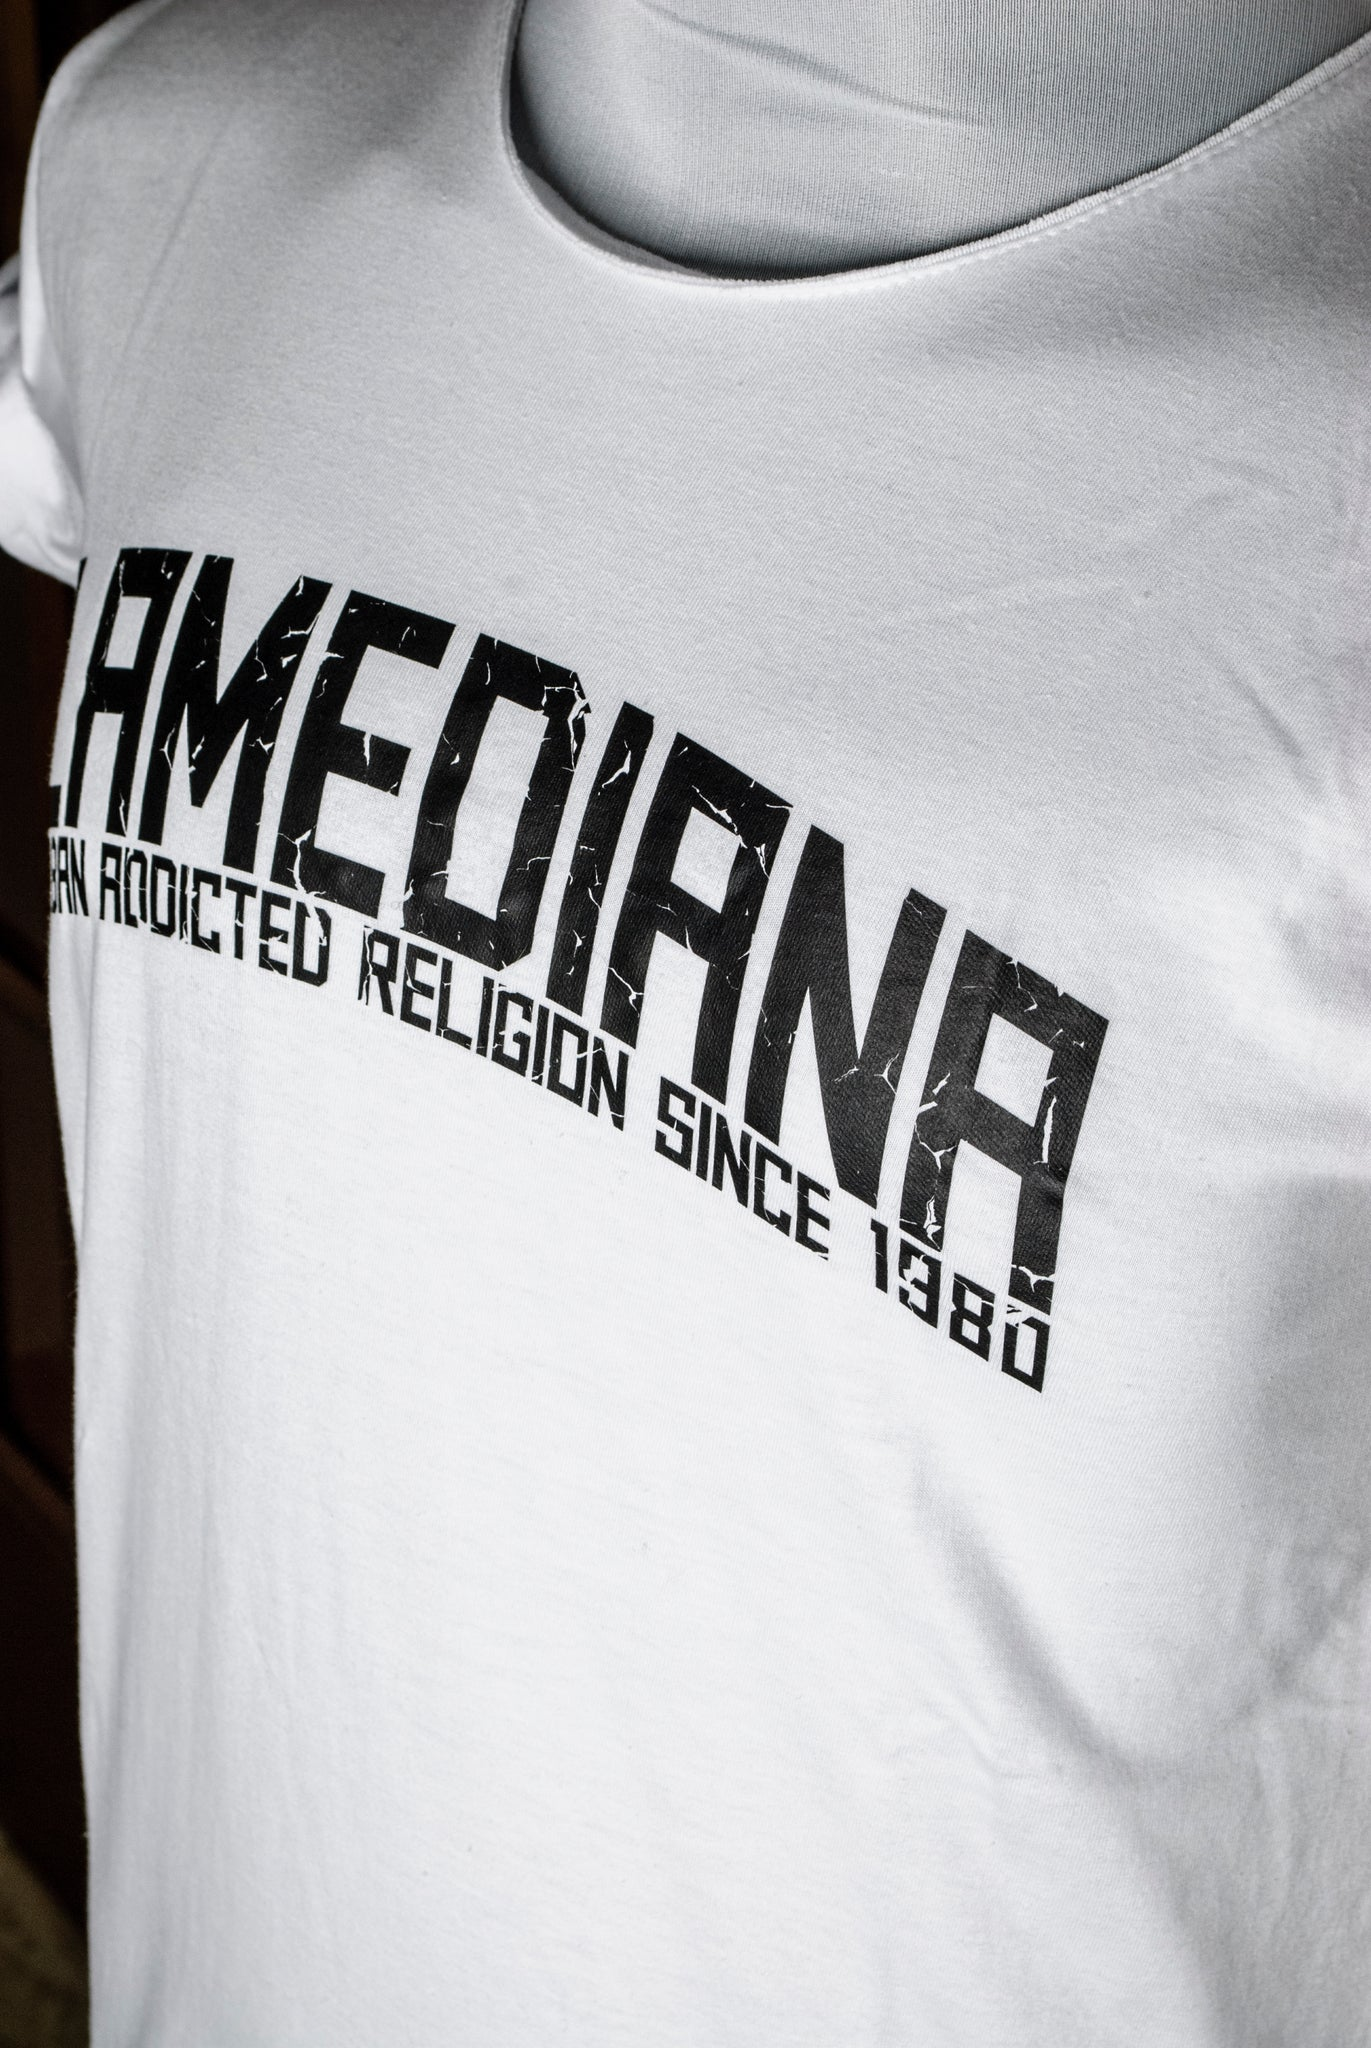 Lamediana Urban Addicted Religion Shirt White